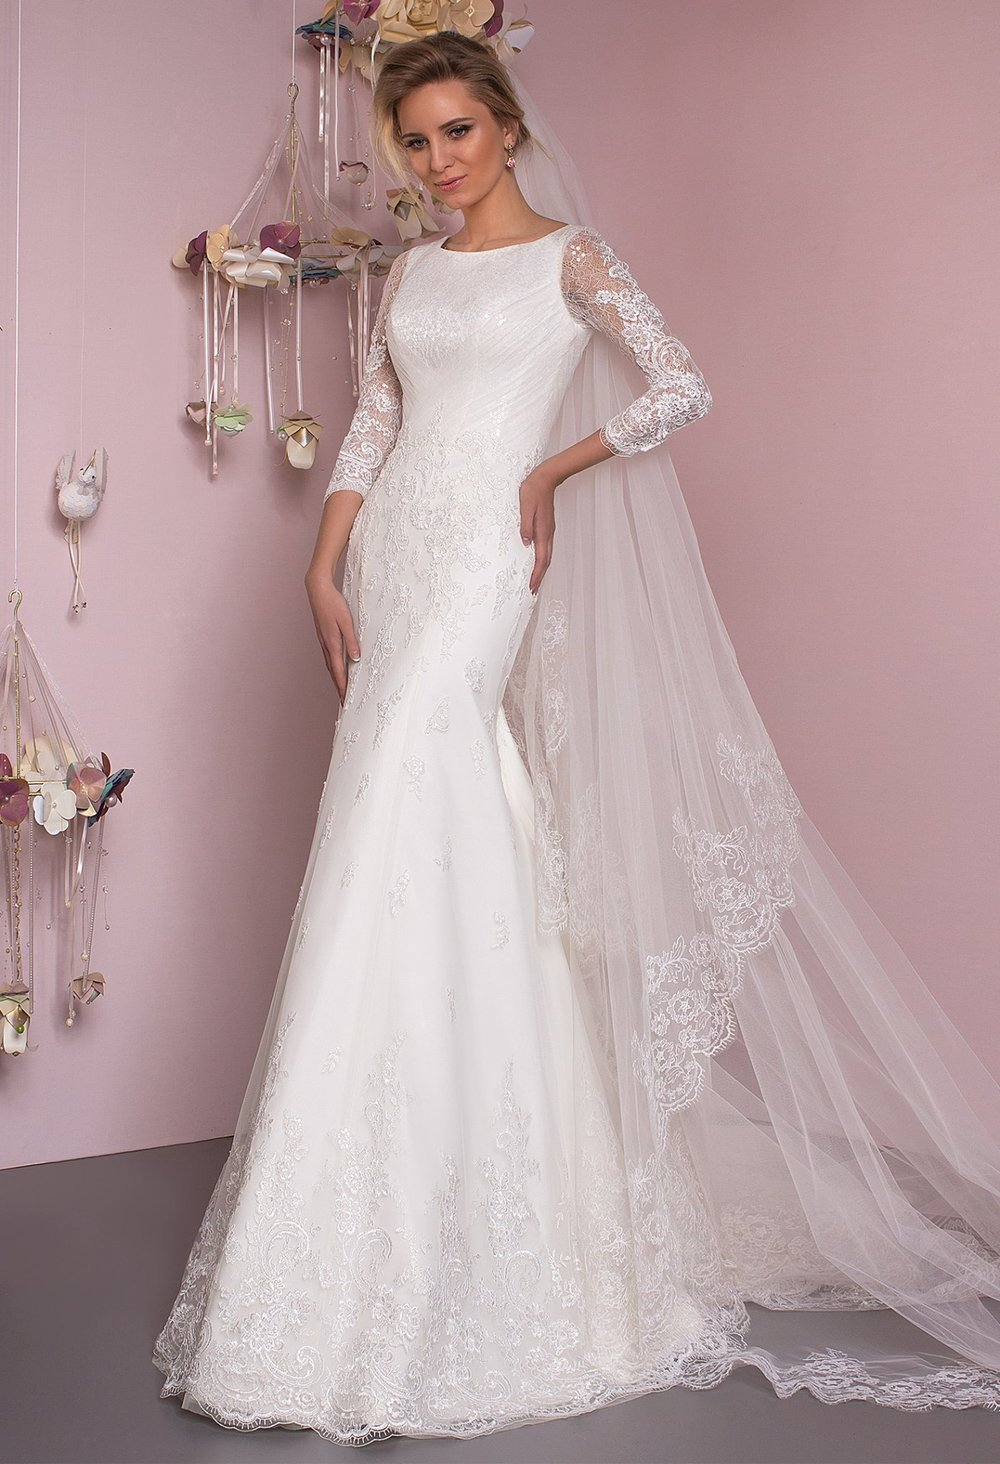 STASY wedding dress  $900